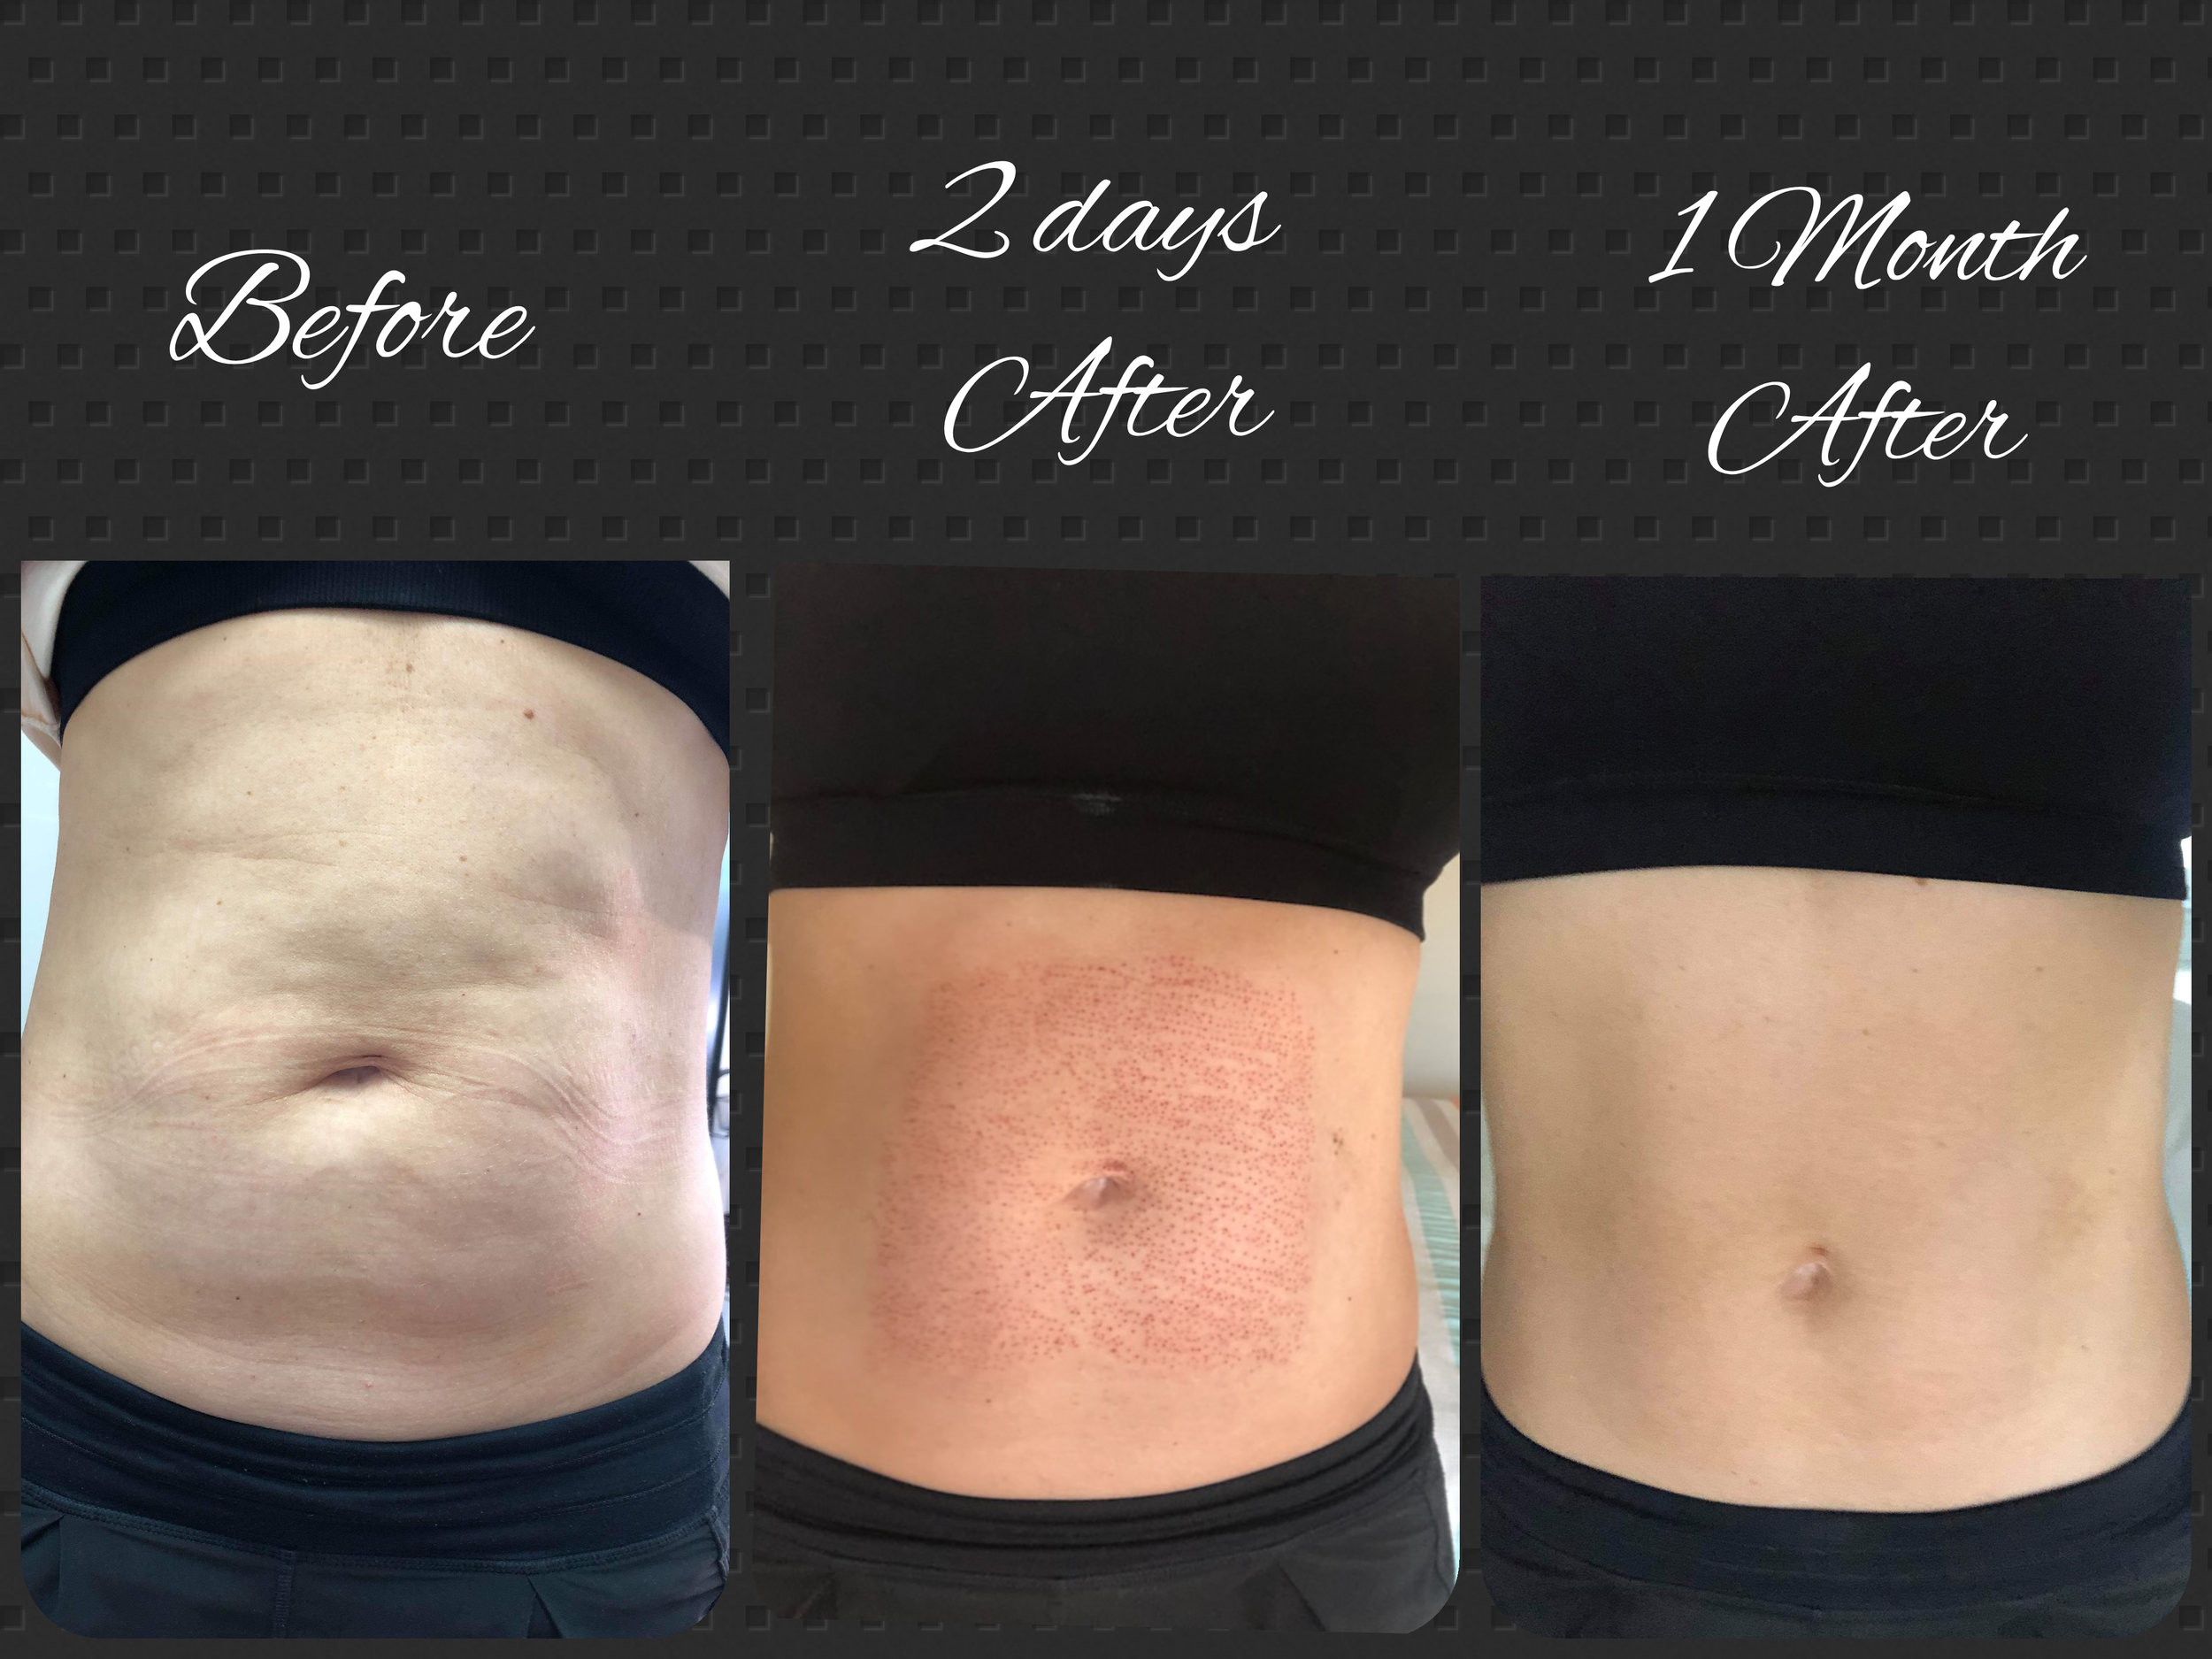 Note - This procedure does not help you loose weight, it tightens your excess skin. The above client had a c-section 3 years ago, and these were the results after the procedure to tighten her skin.